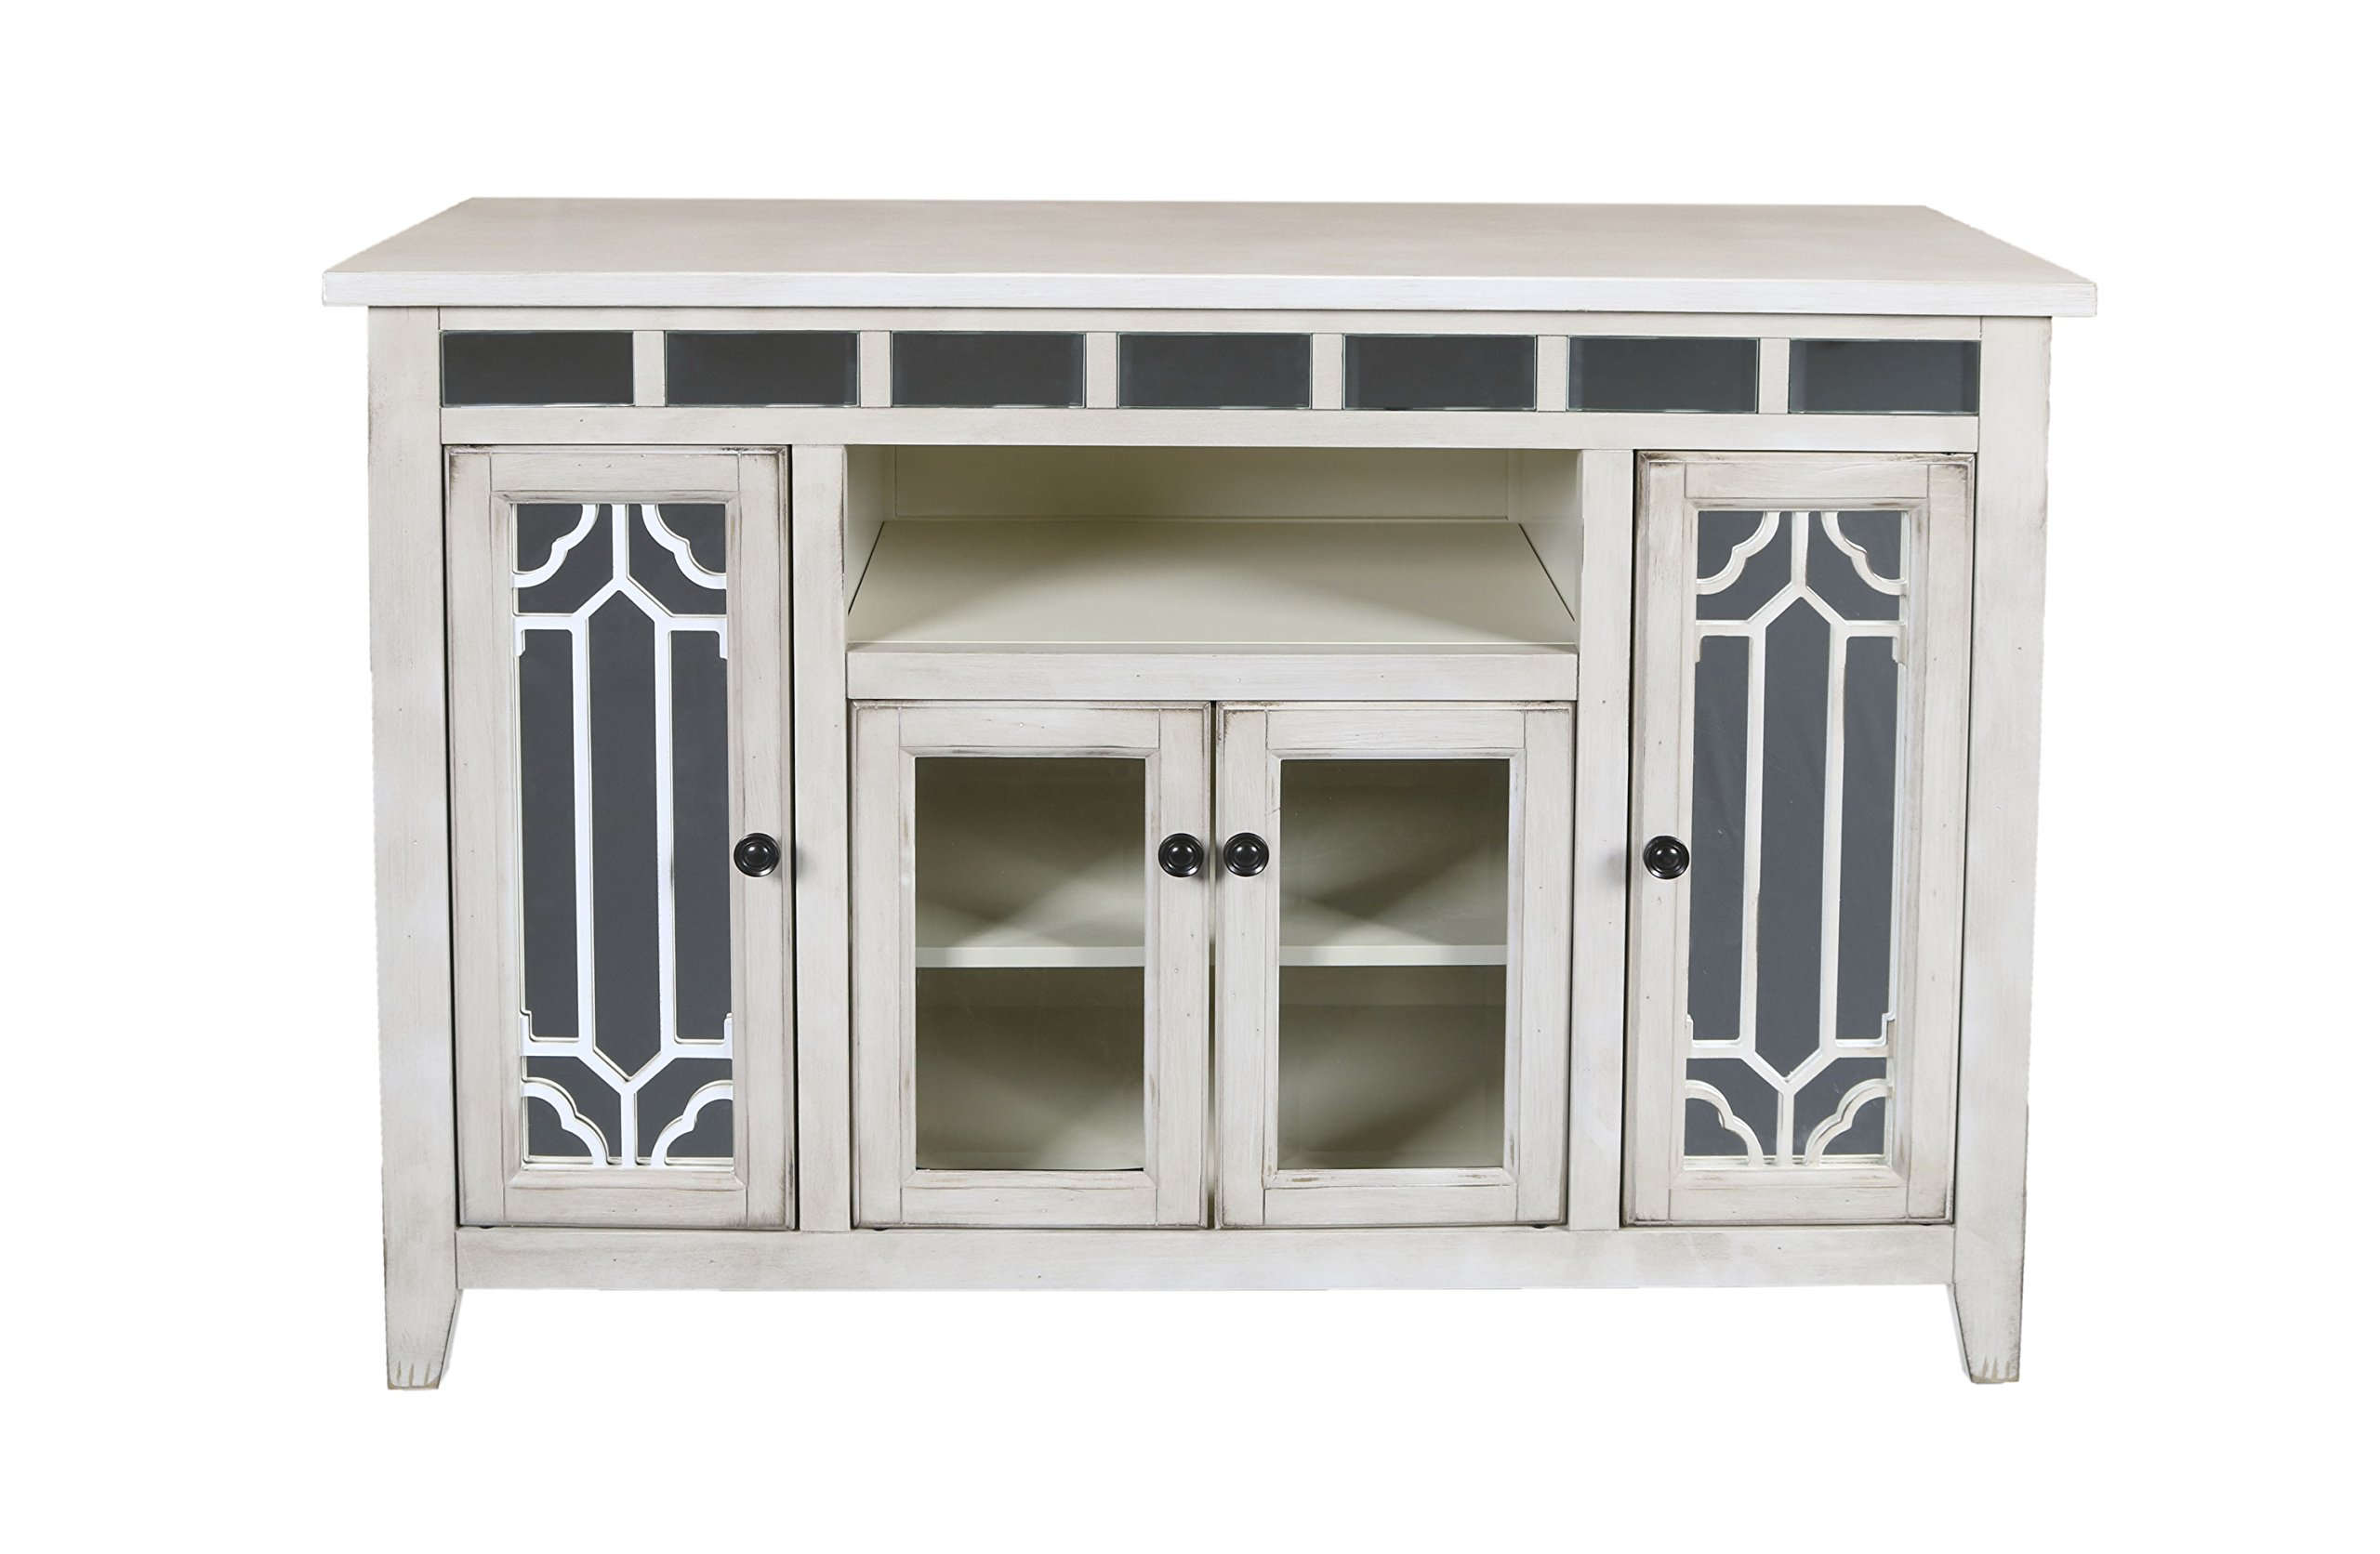 New Classic Furniture T1017-48-CRM Gable Entertainment Unit, 48-Inch, Creme, Crème by New Classic Furniture